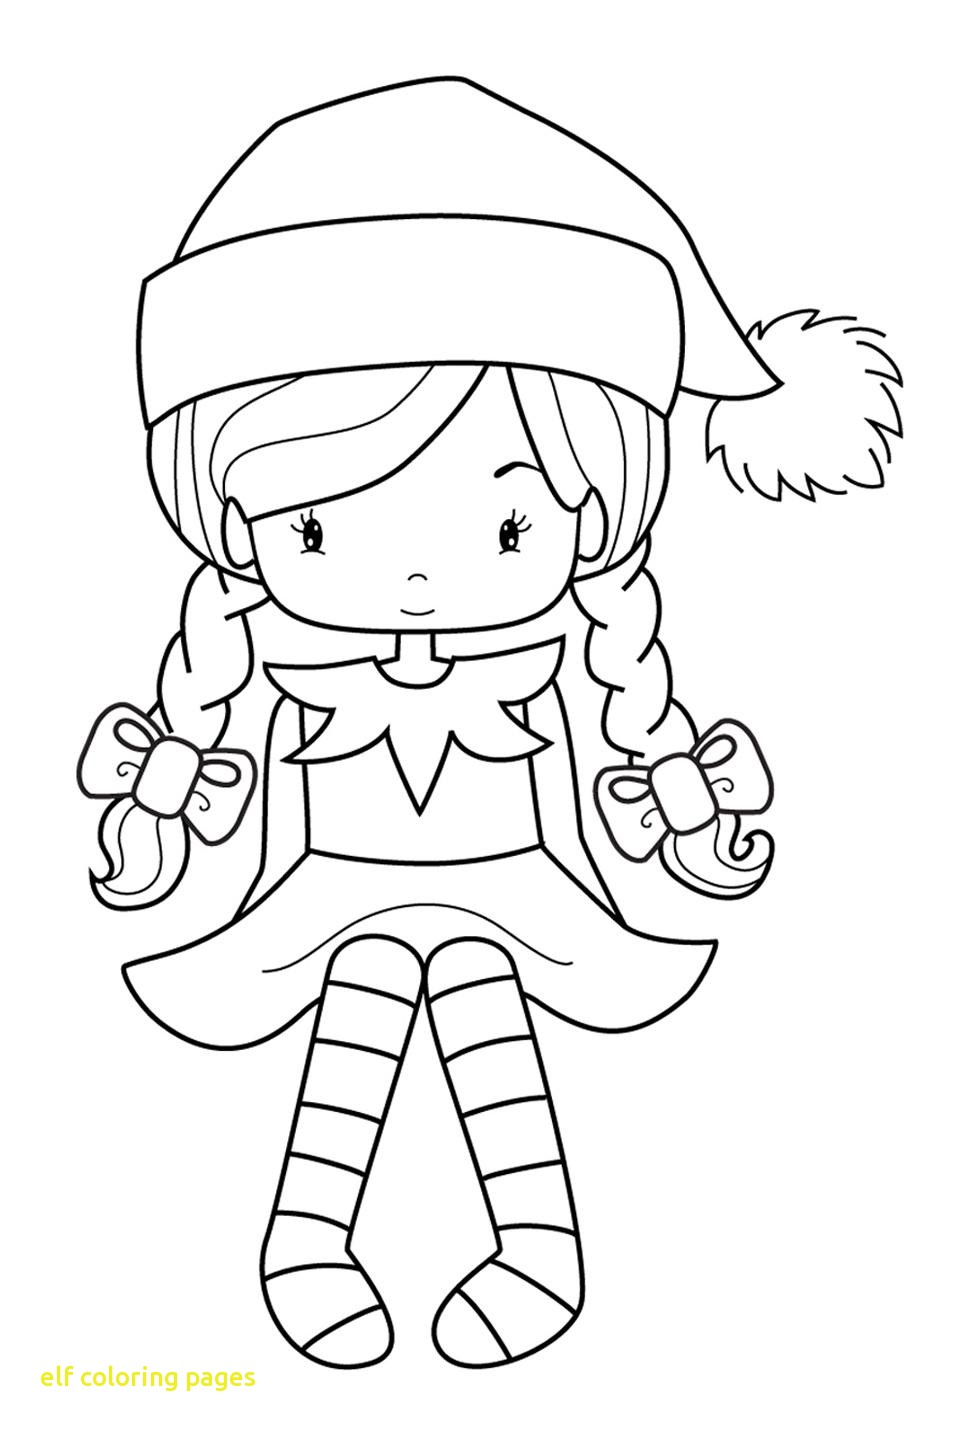 972x1434 Elf Coloring Pages With Simple Elf Coloring Page